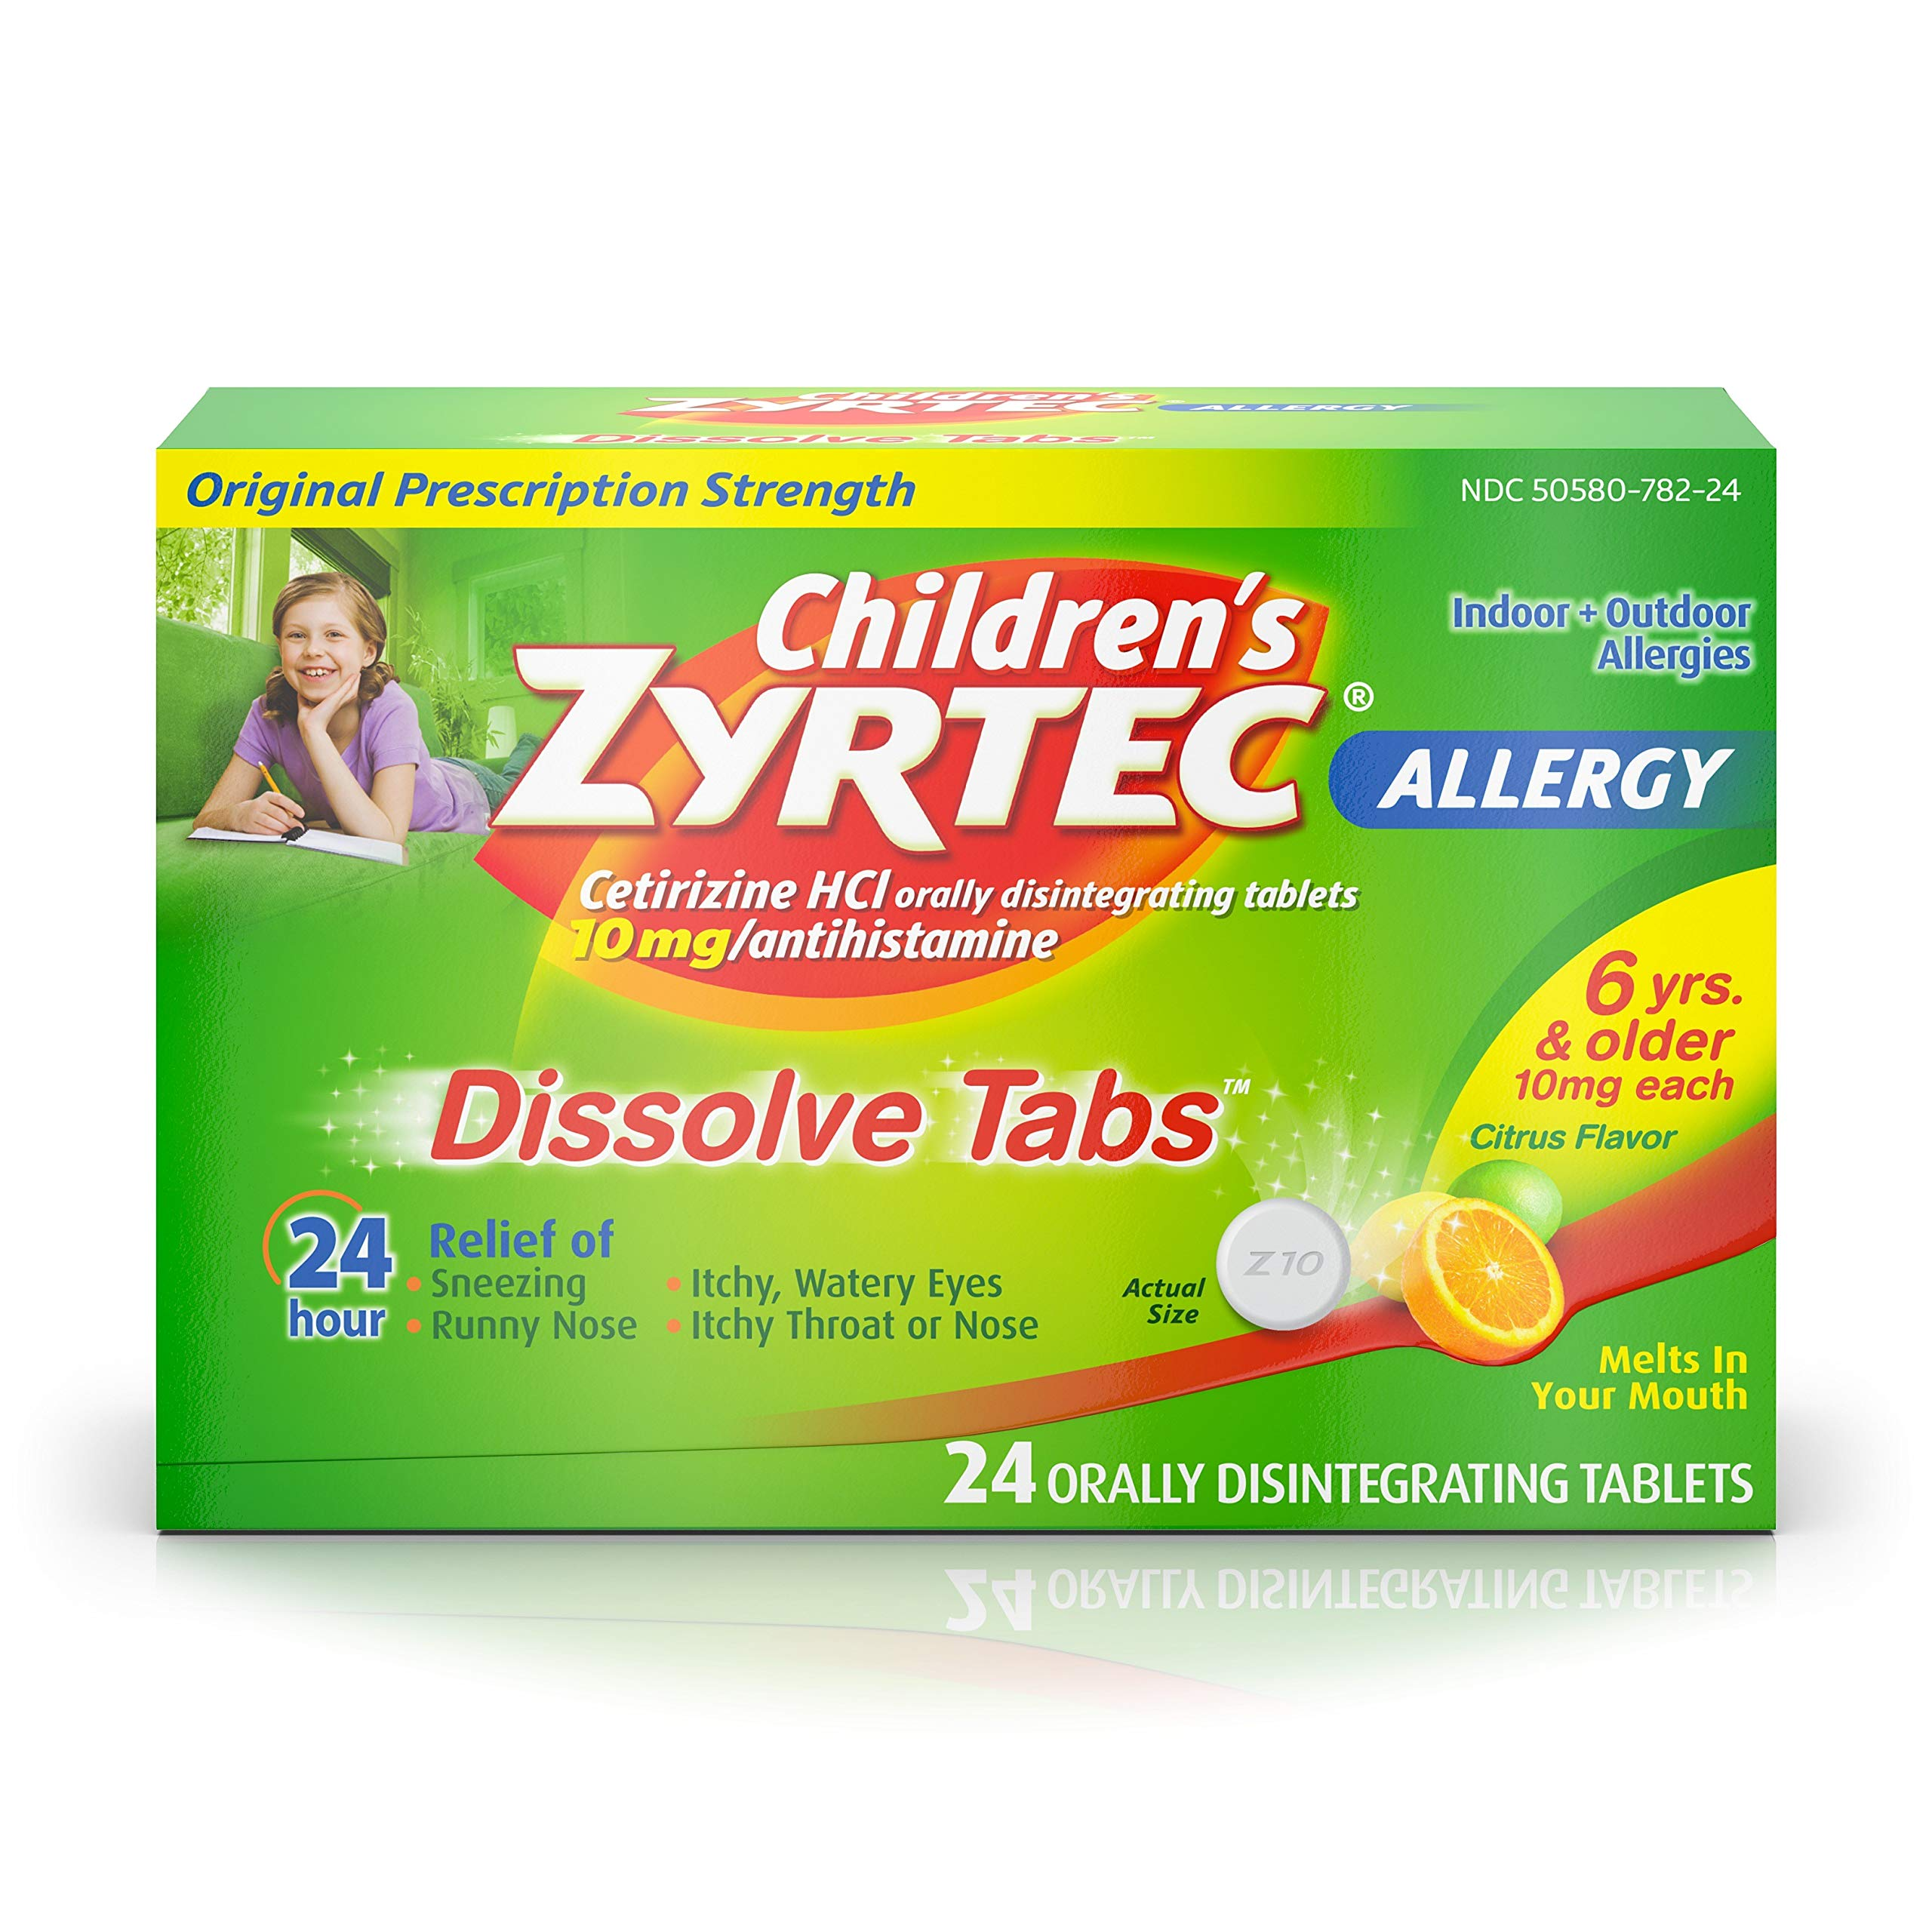 Children's Zyrtec 24 HR Dissolving Allergy Relief Tablets with Cetirizine, Citrus Flavored, 24 ct by Zyrtec